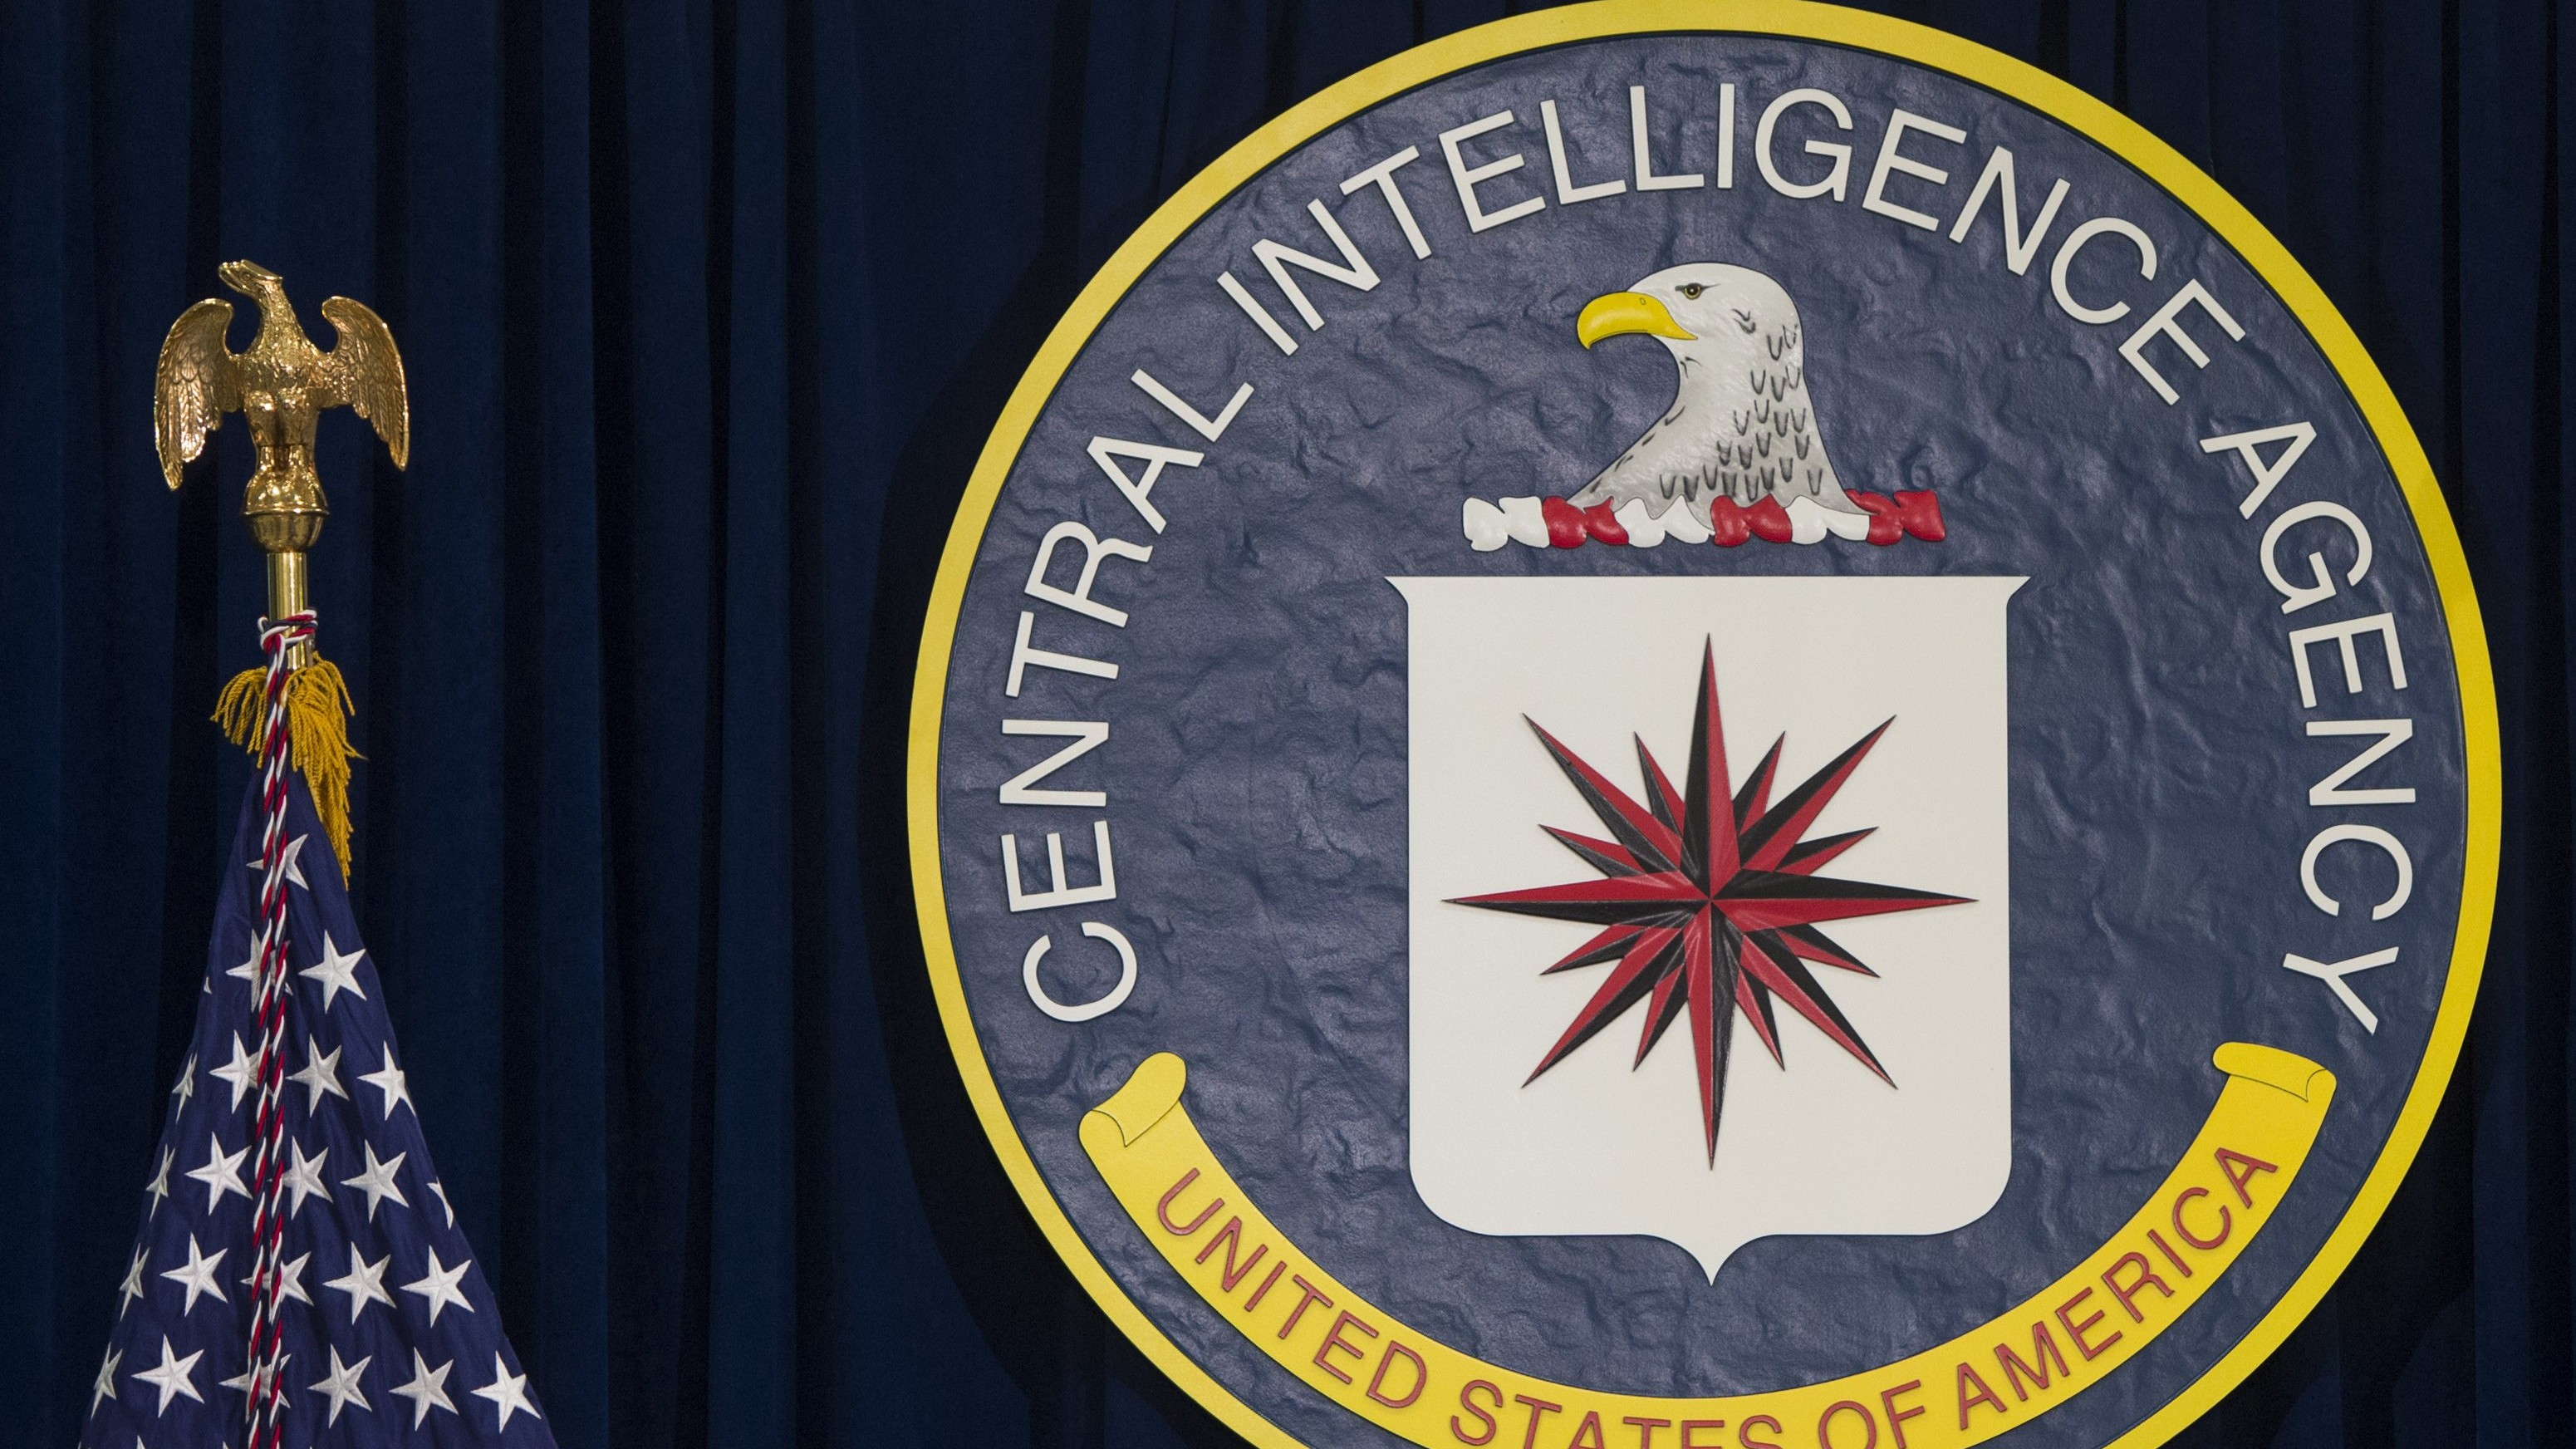 Feds Raid Apartment of Suspected CIA Leaker, Find 10,000 Images of Child Porn